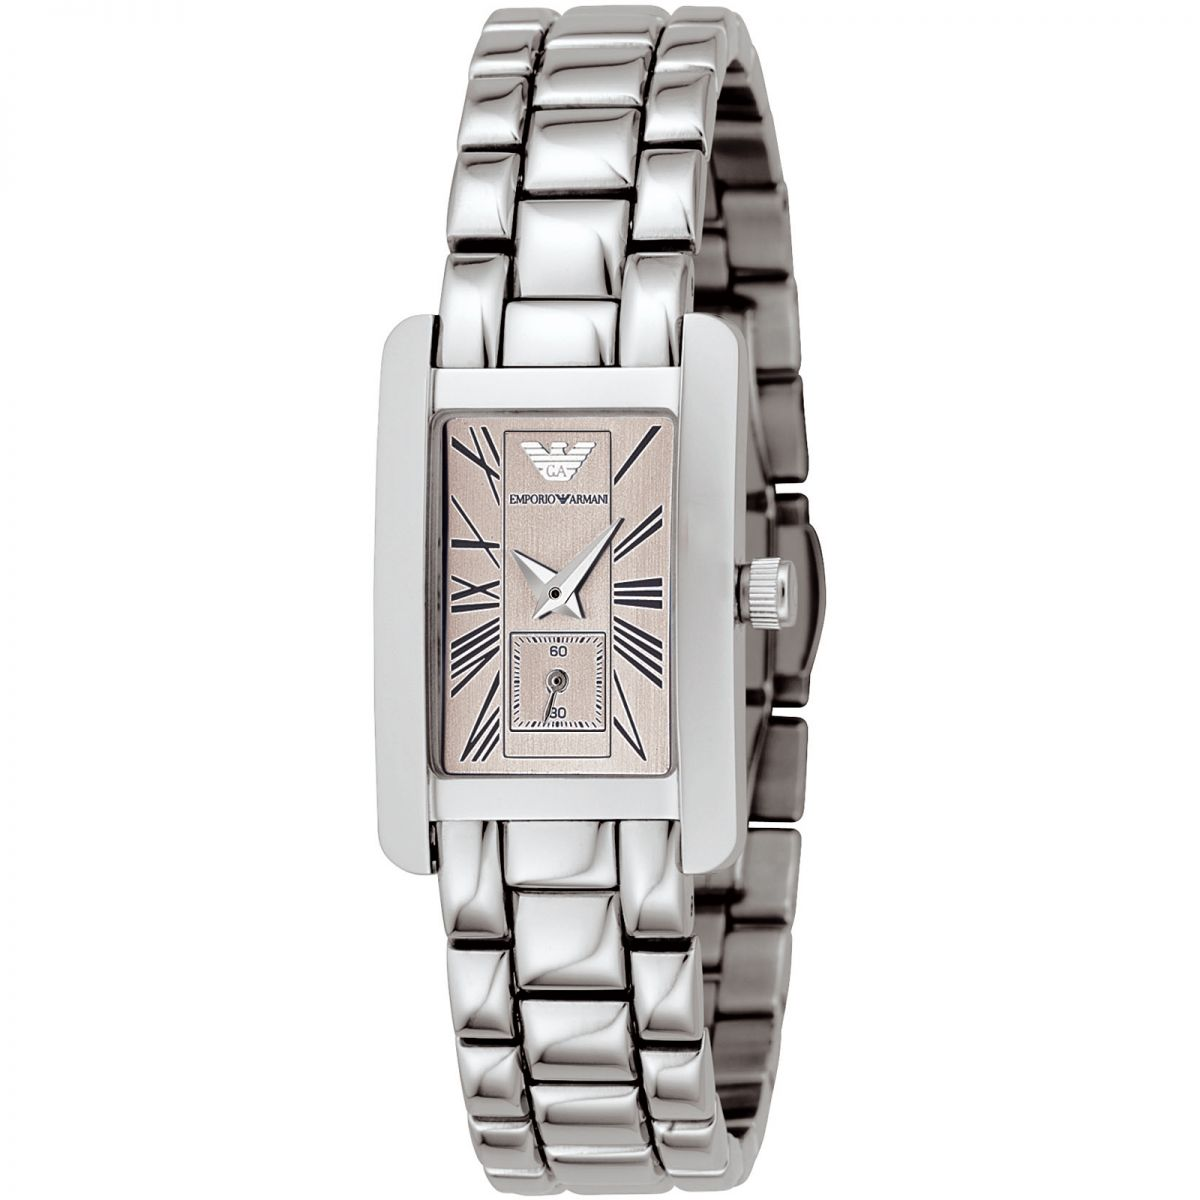 Emporio Armani Classic Ladies Watch | Chronograph Dial | Silver Bracelet Band | AR0172